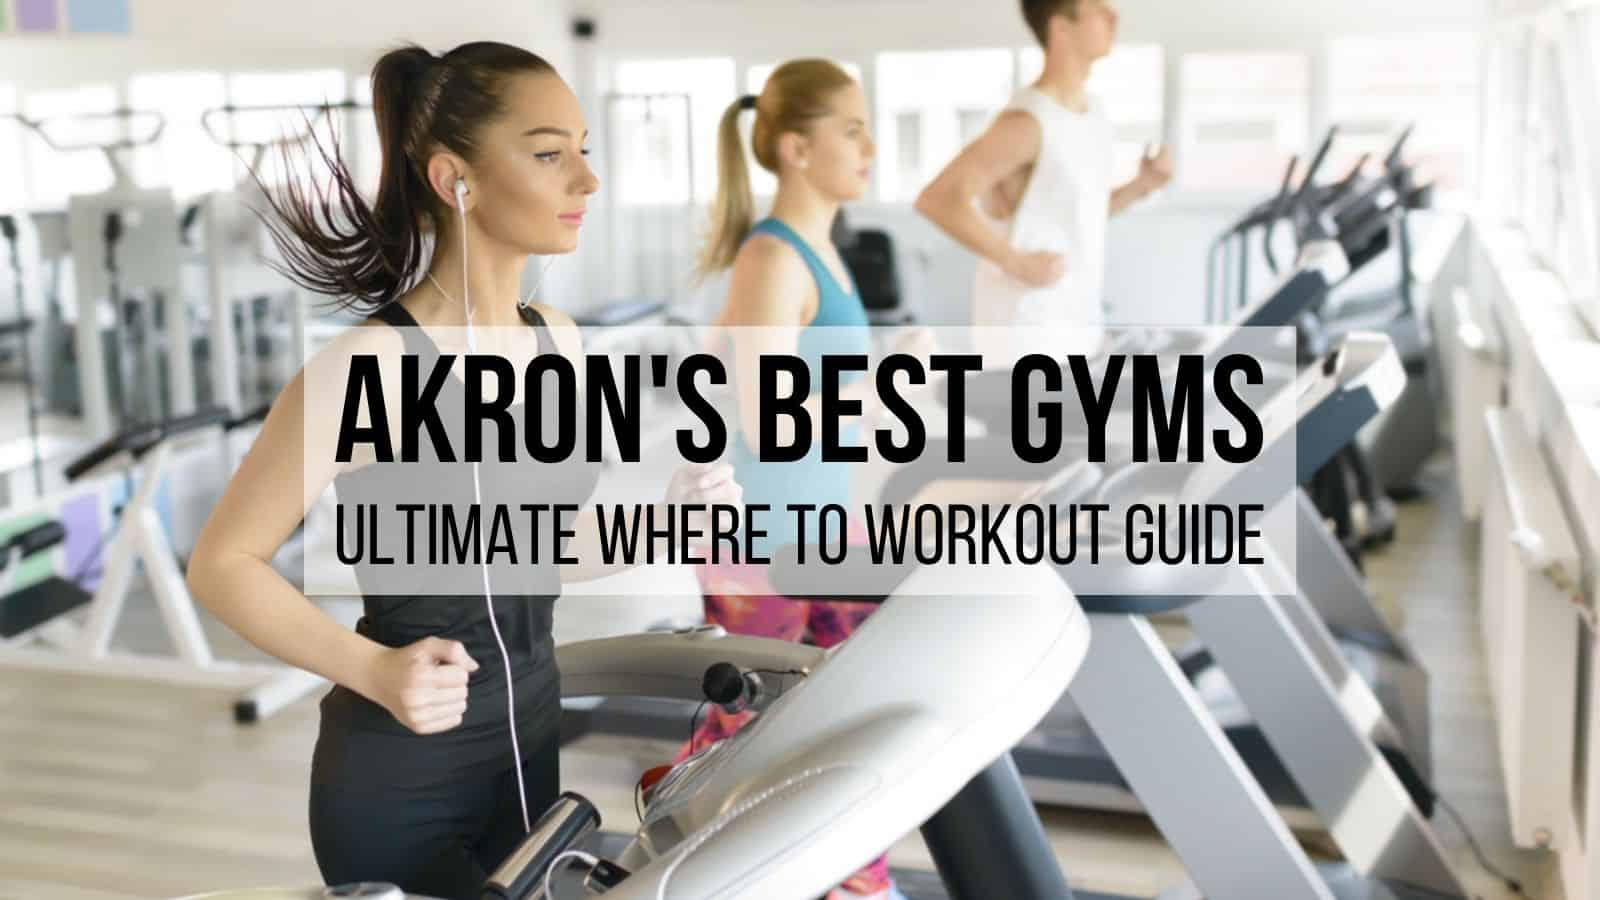 Akron's Best Gyms - ULTIMATE Where to Workout Guide